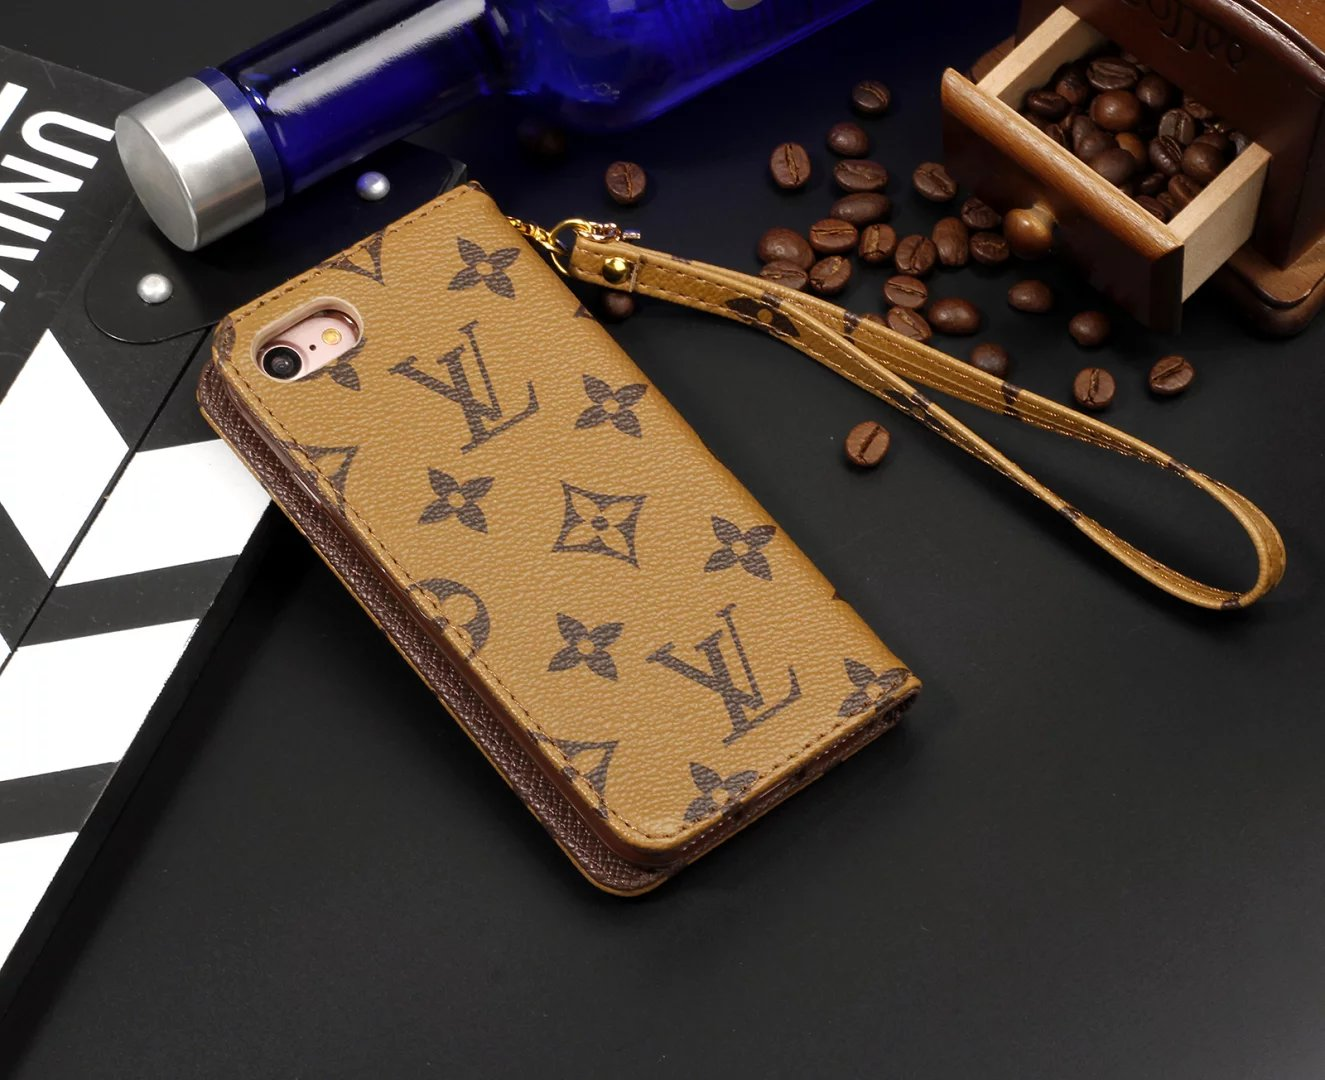 foto iphone hülle iphone hülle bedrucken Louis Vuitton iphone6s plus hülle alu hülle iphone 6s Plus fotohülle iphone handyhülle erstellen originelle iphone hüllen filzhülle iphone iphone 6s Plus hülle